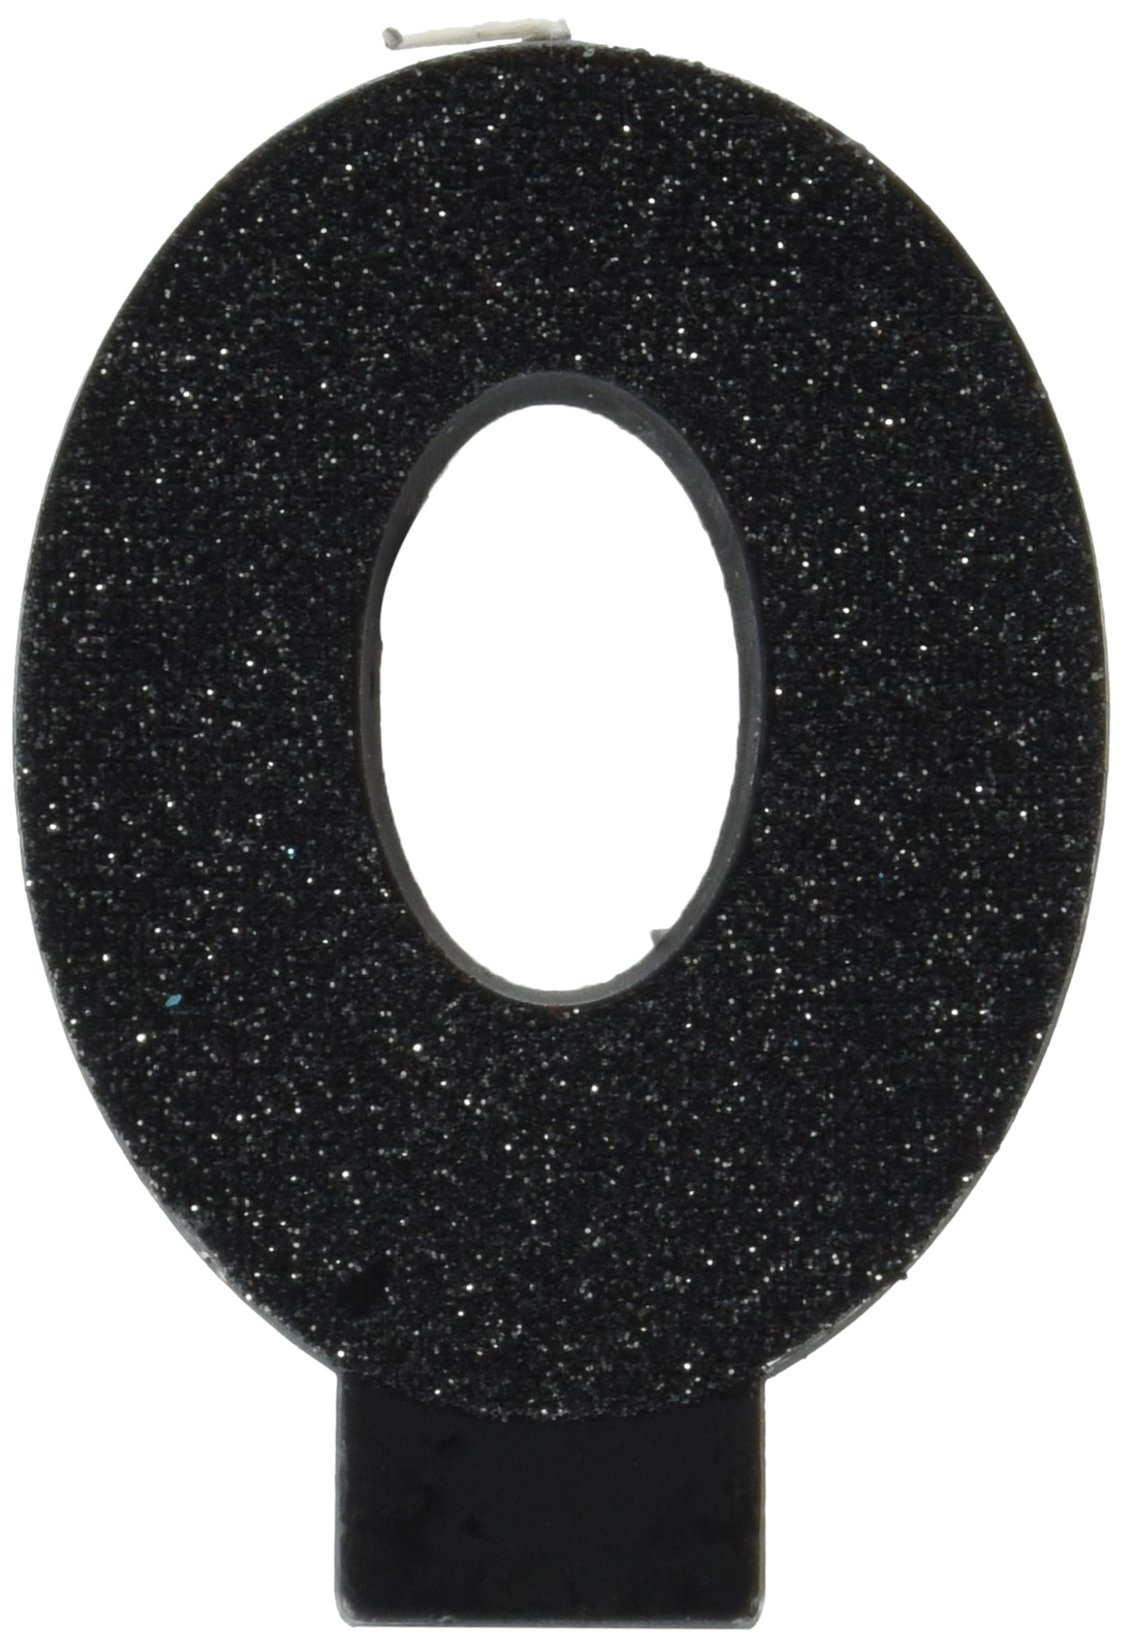 amscan Birthday Celebration, Numeral #0 Glitter Candle, Party Supplies, Black, 3 1/4""